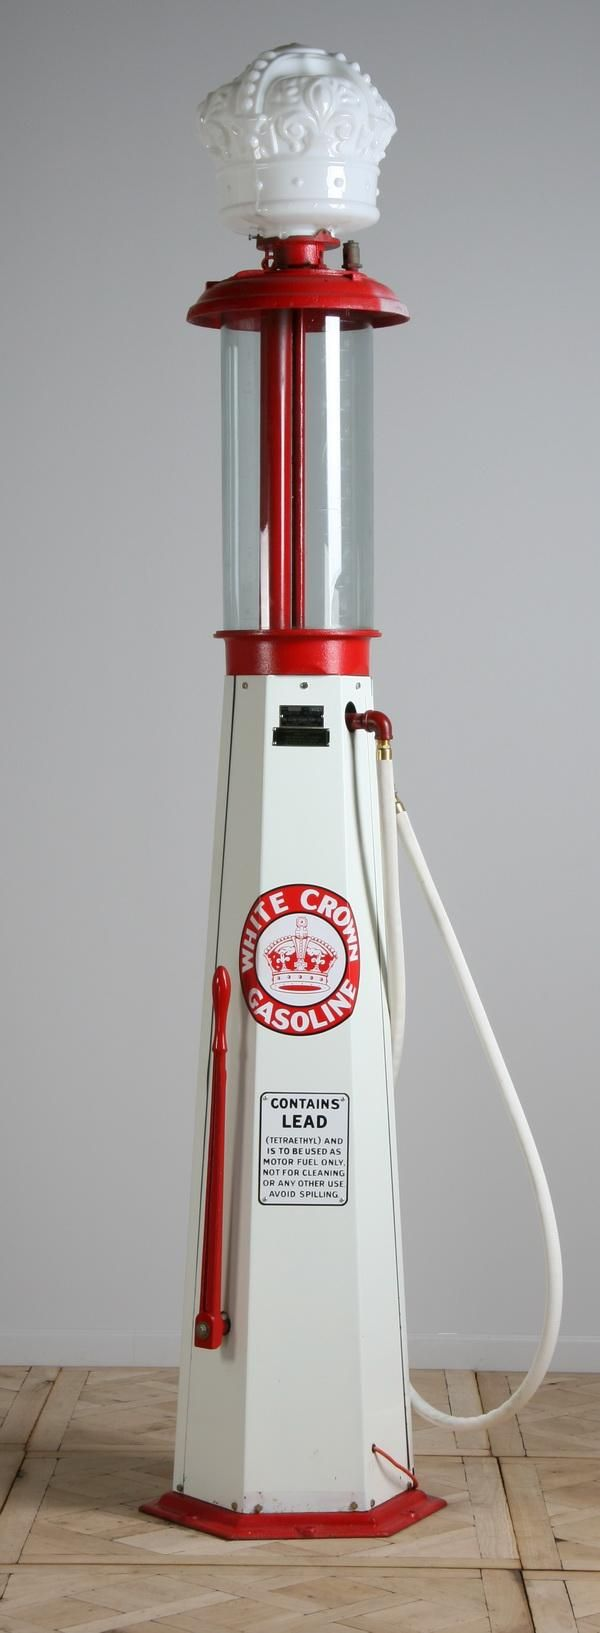 vintage+gas+pumps | 486: Vintage gas pump by Clear Vision Pump Company